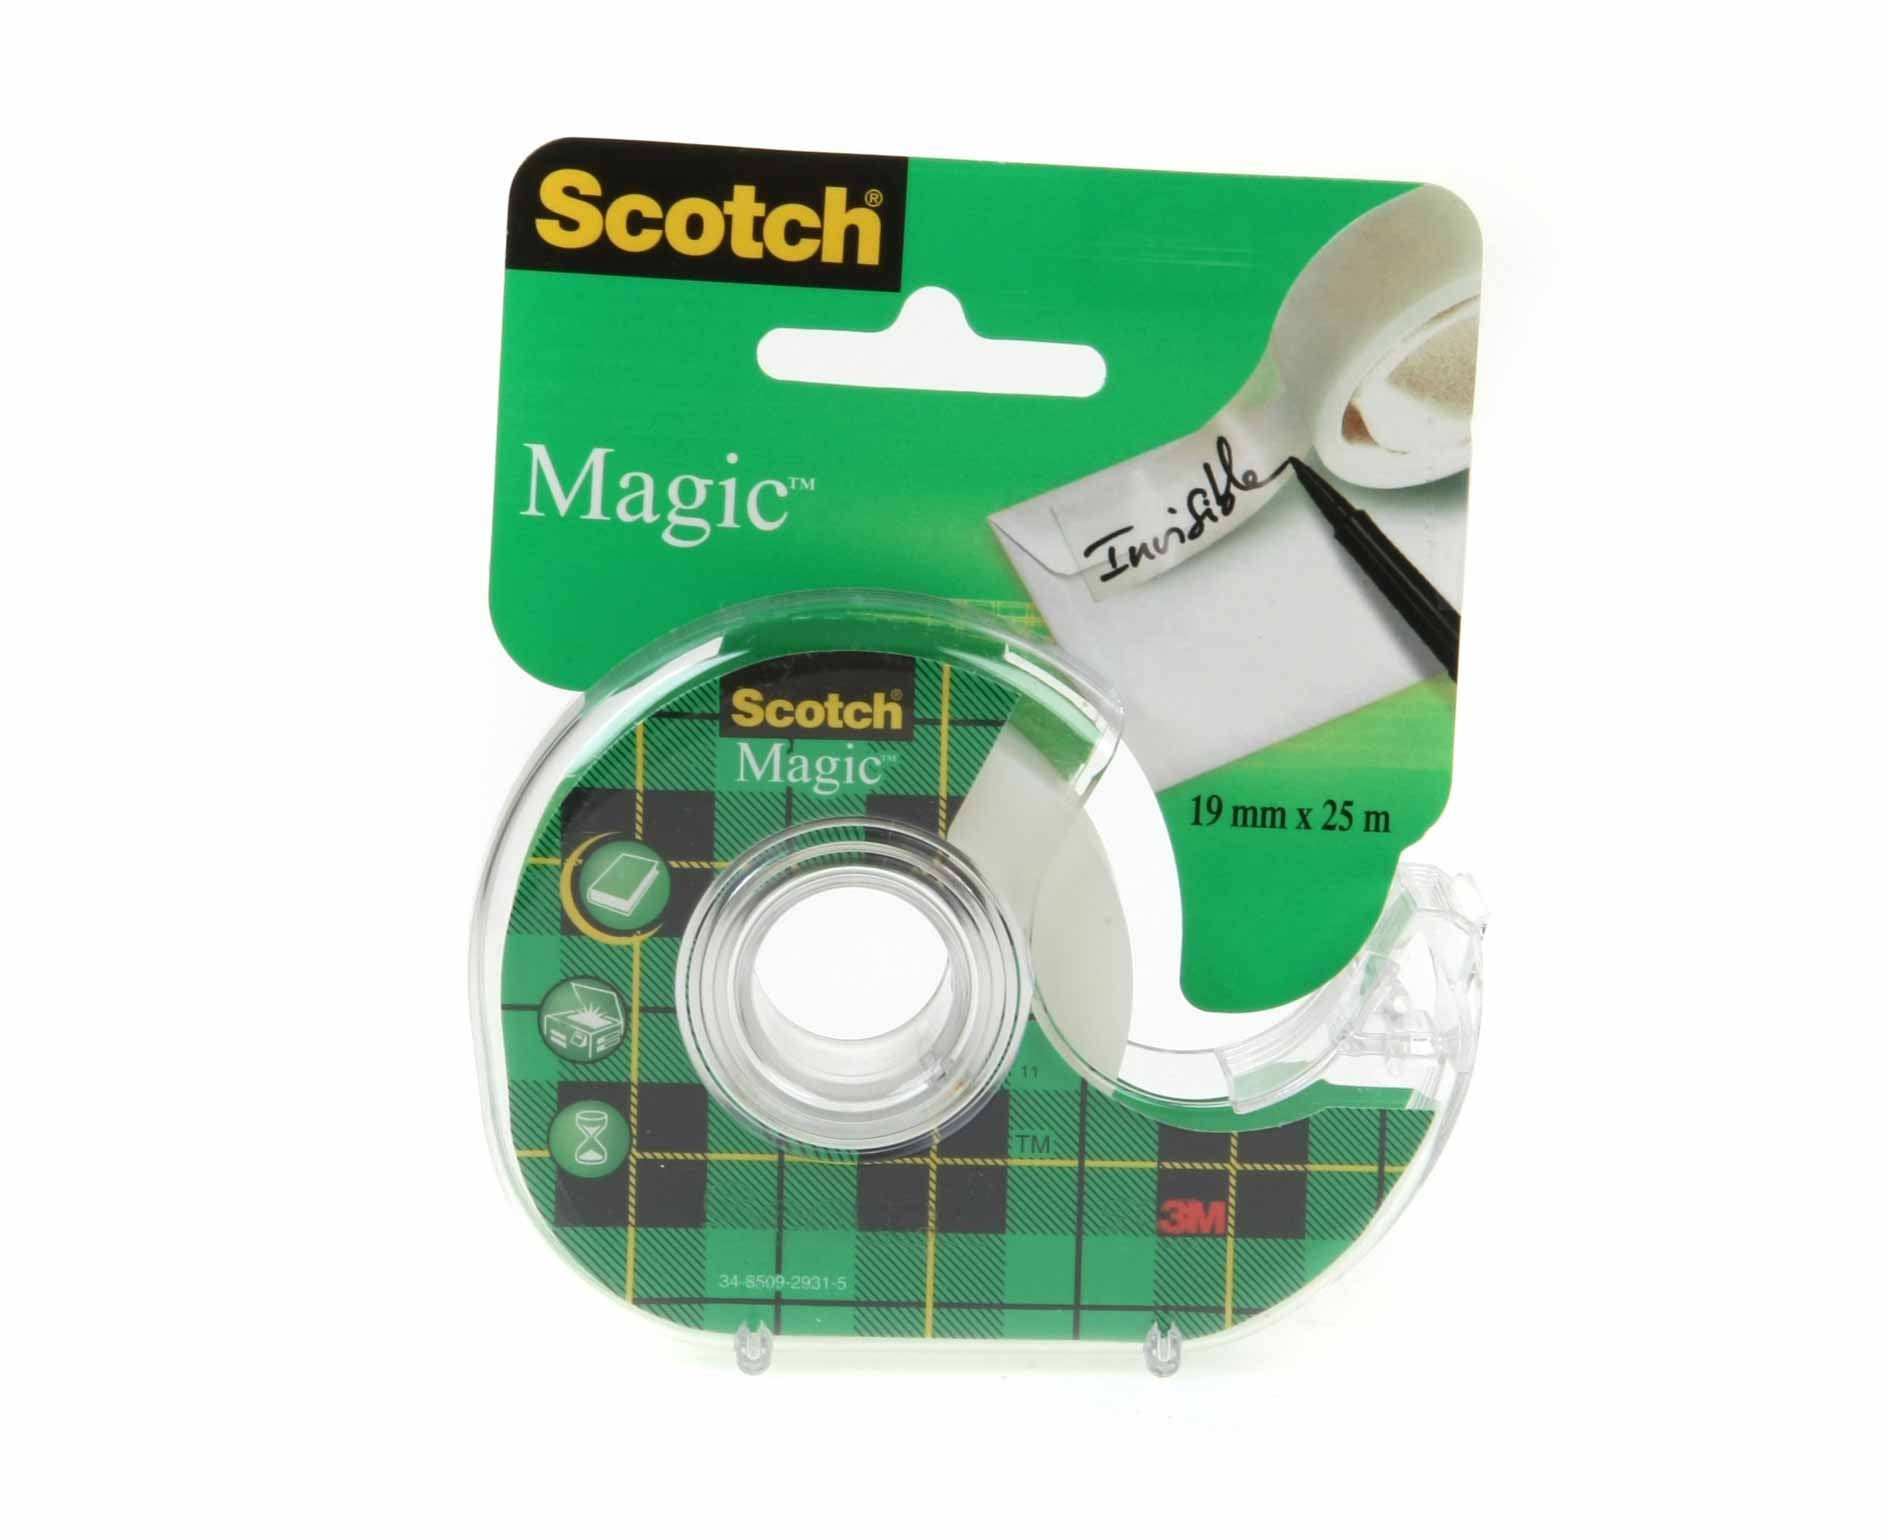 Image of 3M Scotch Magic Tape 19mm x 25m with Dispenser, Clear